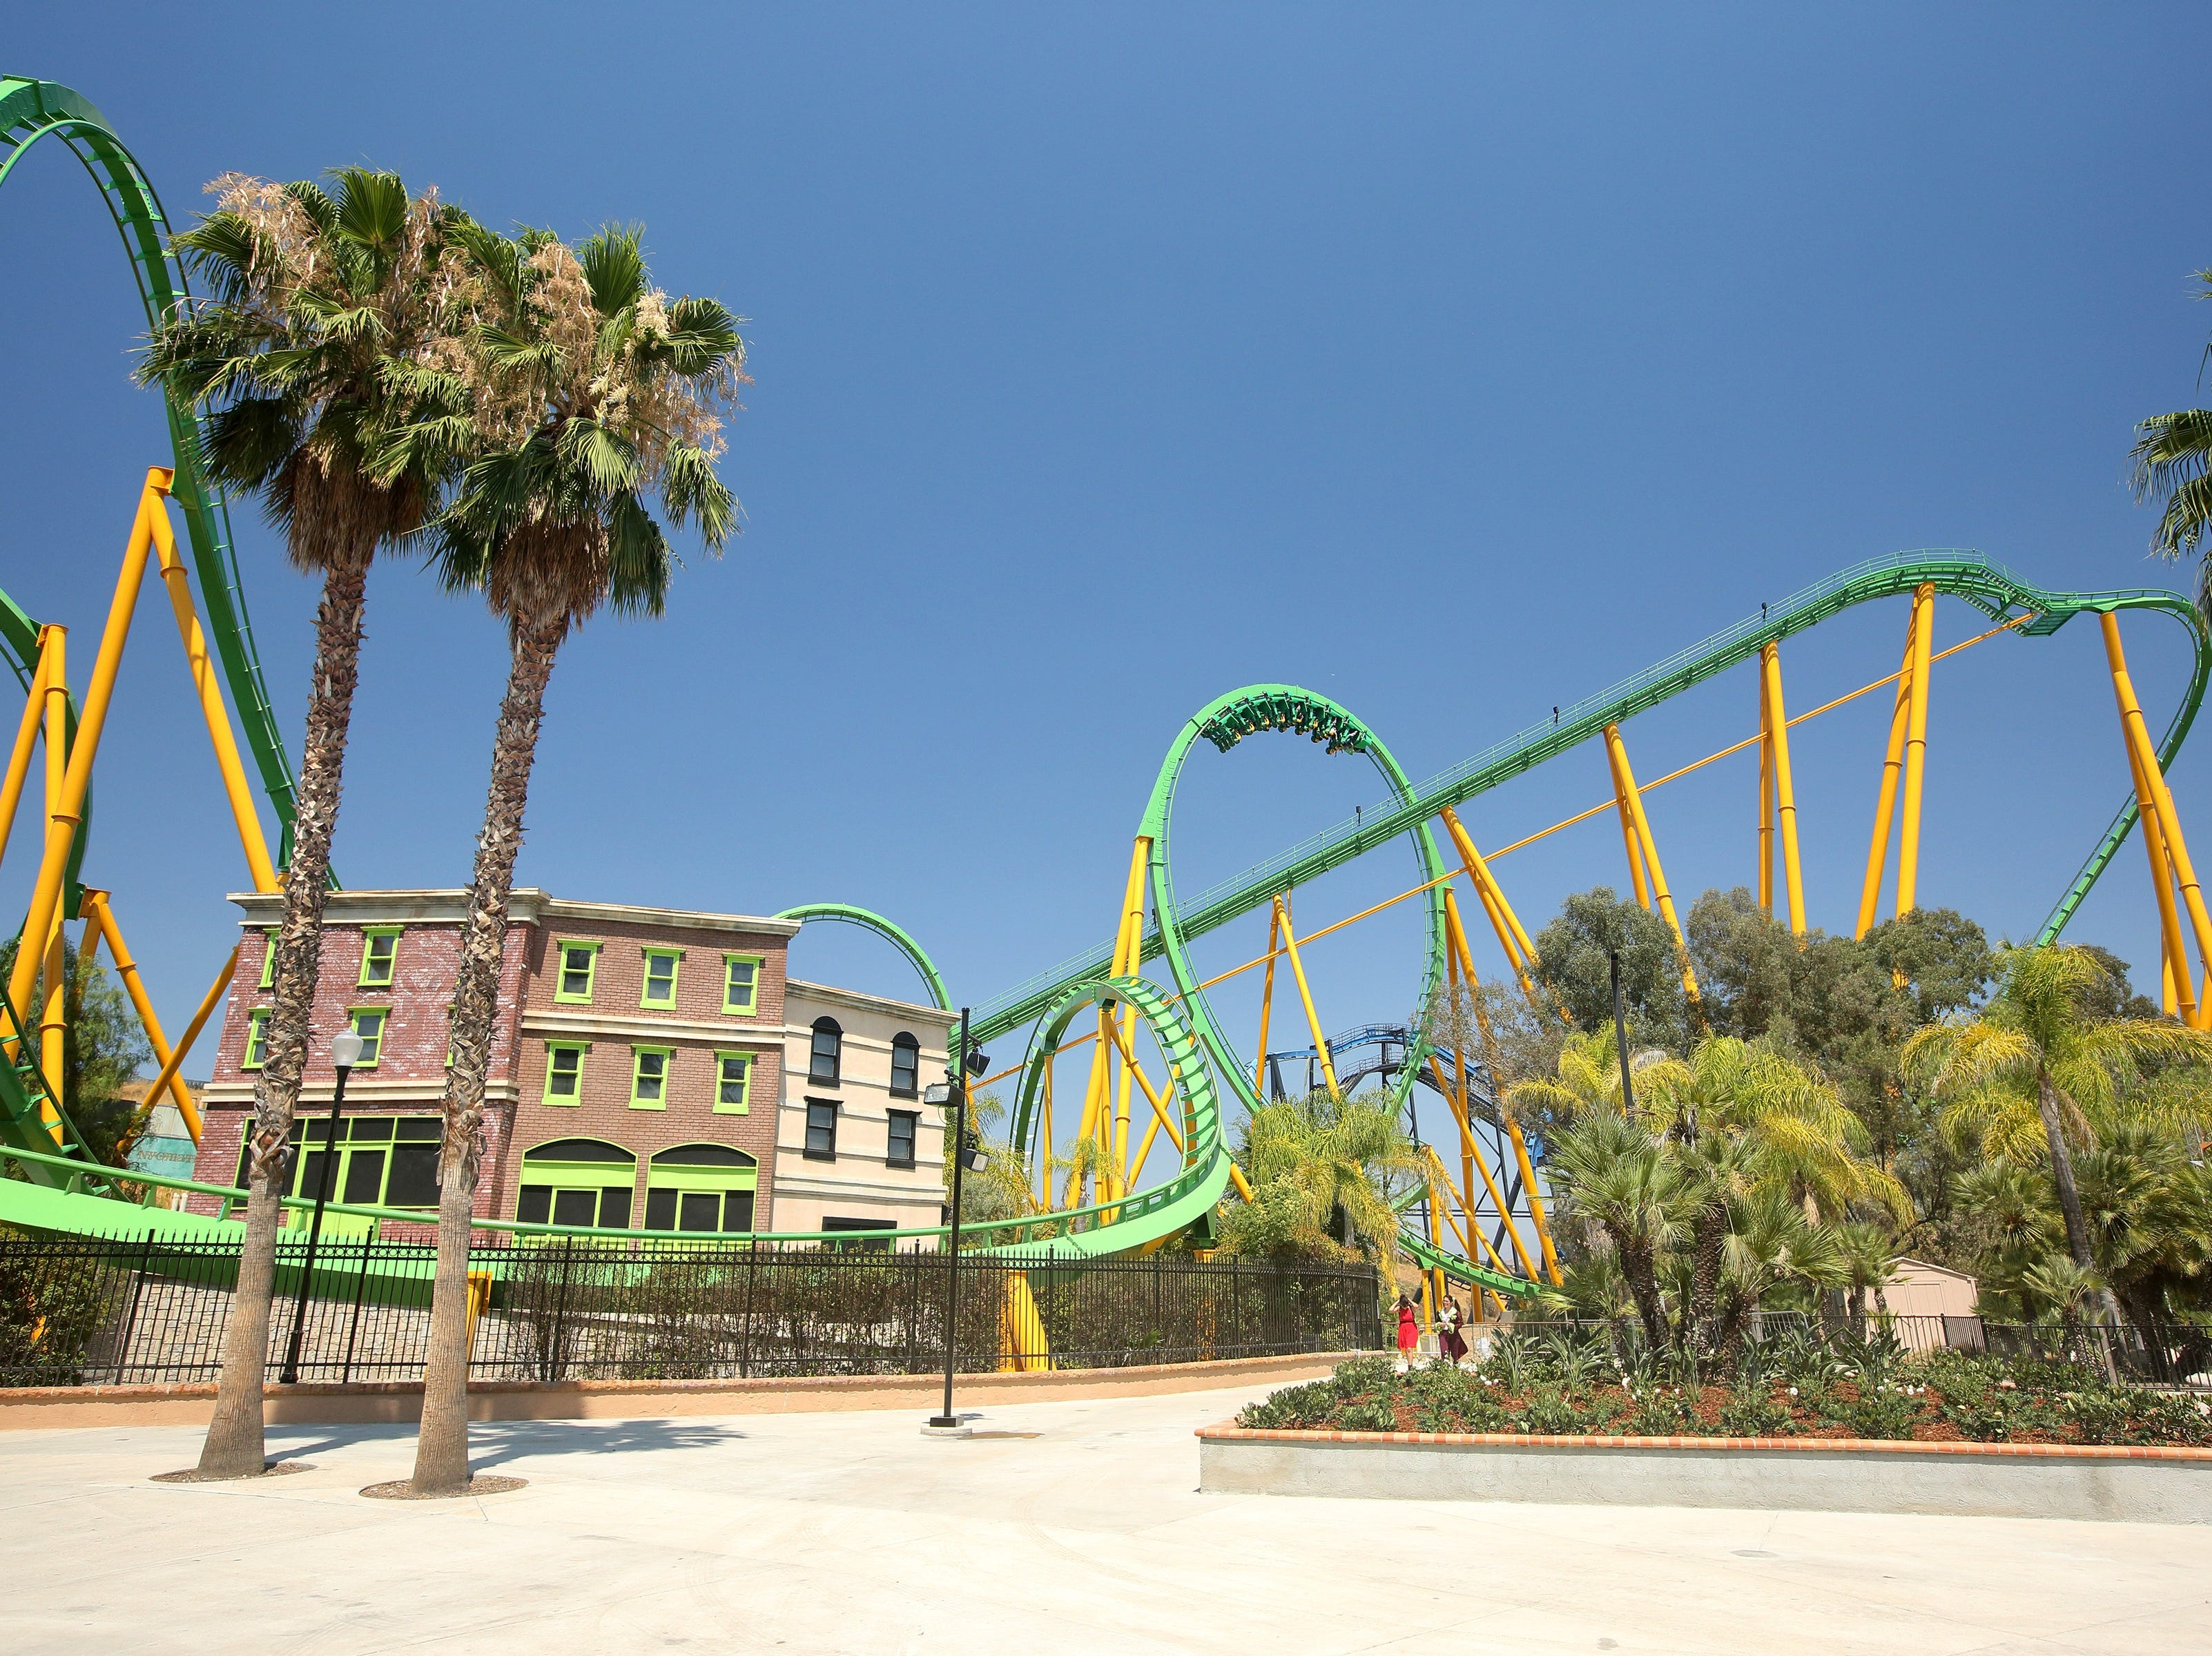 Six Flags Magic Mountain is known for its assortment of coasters.